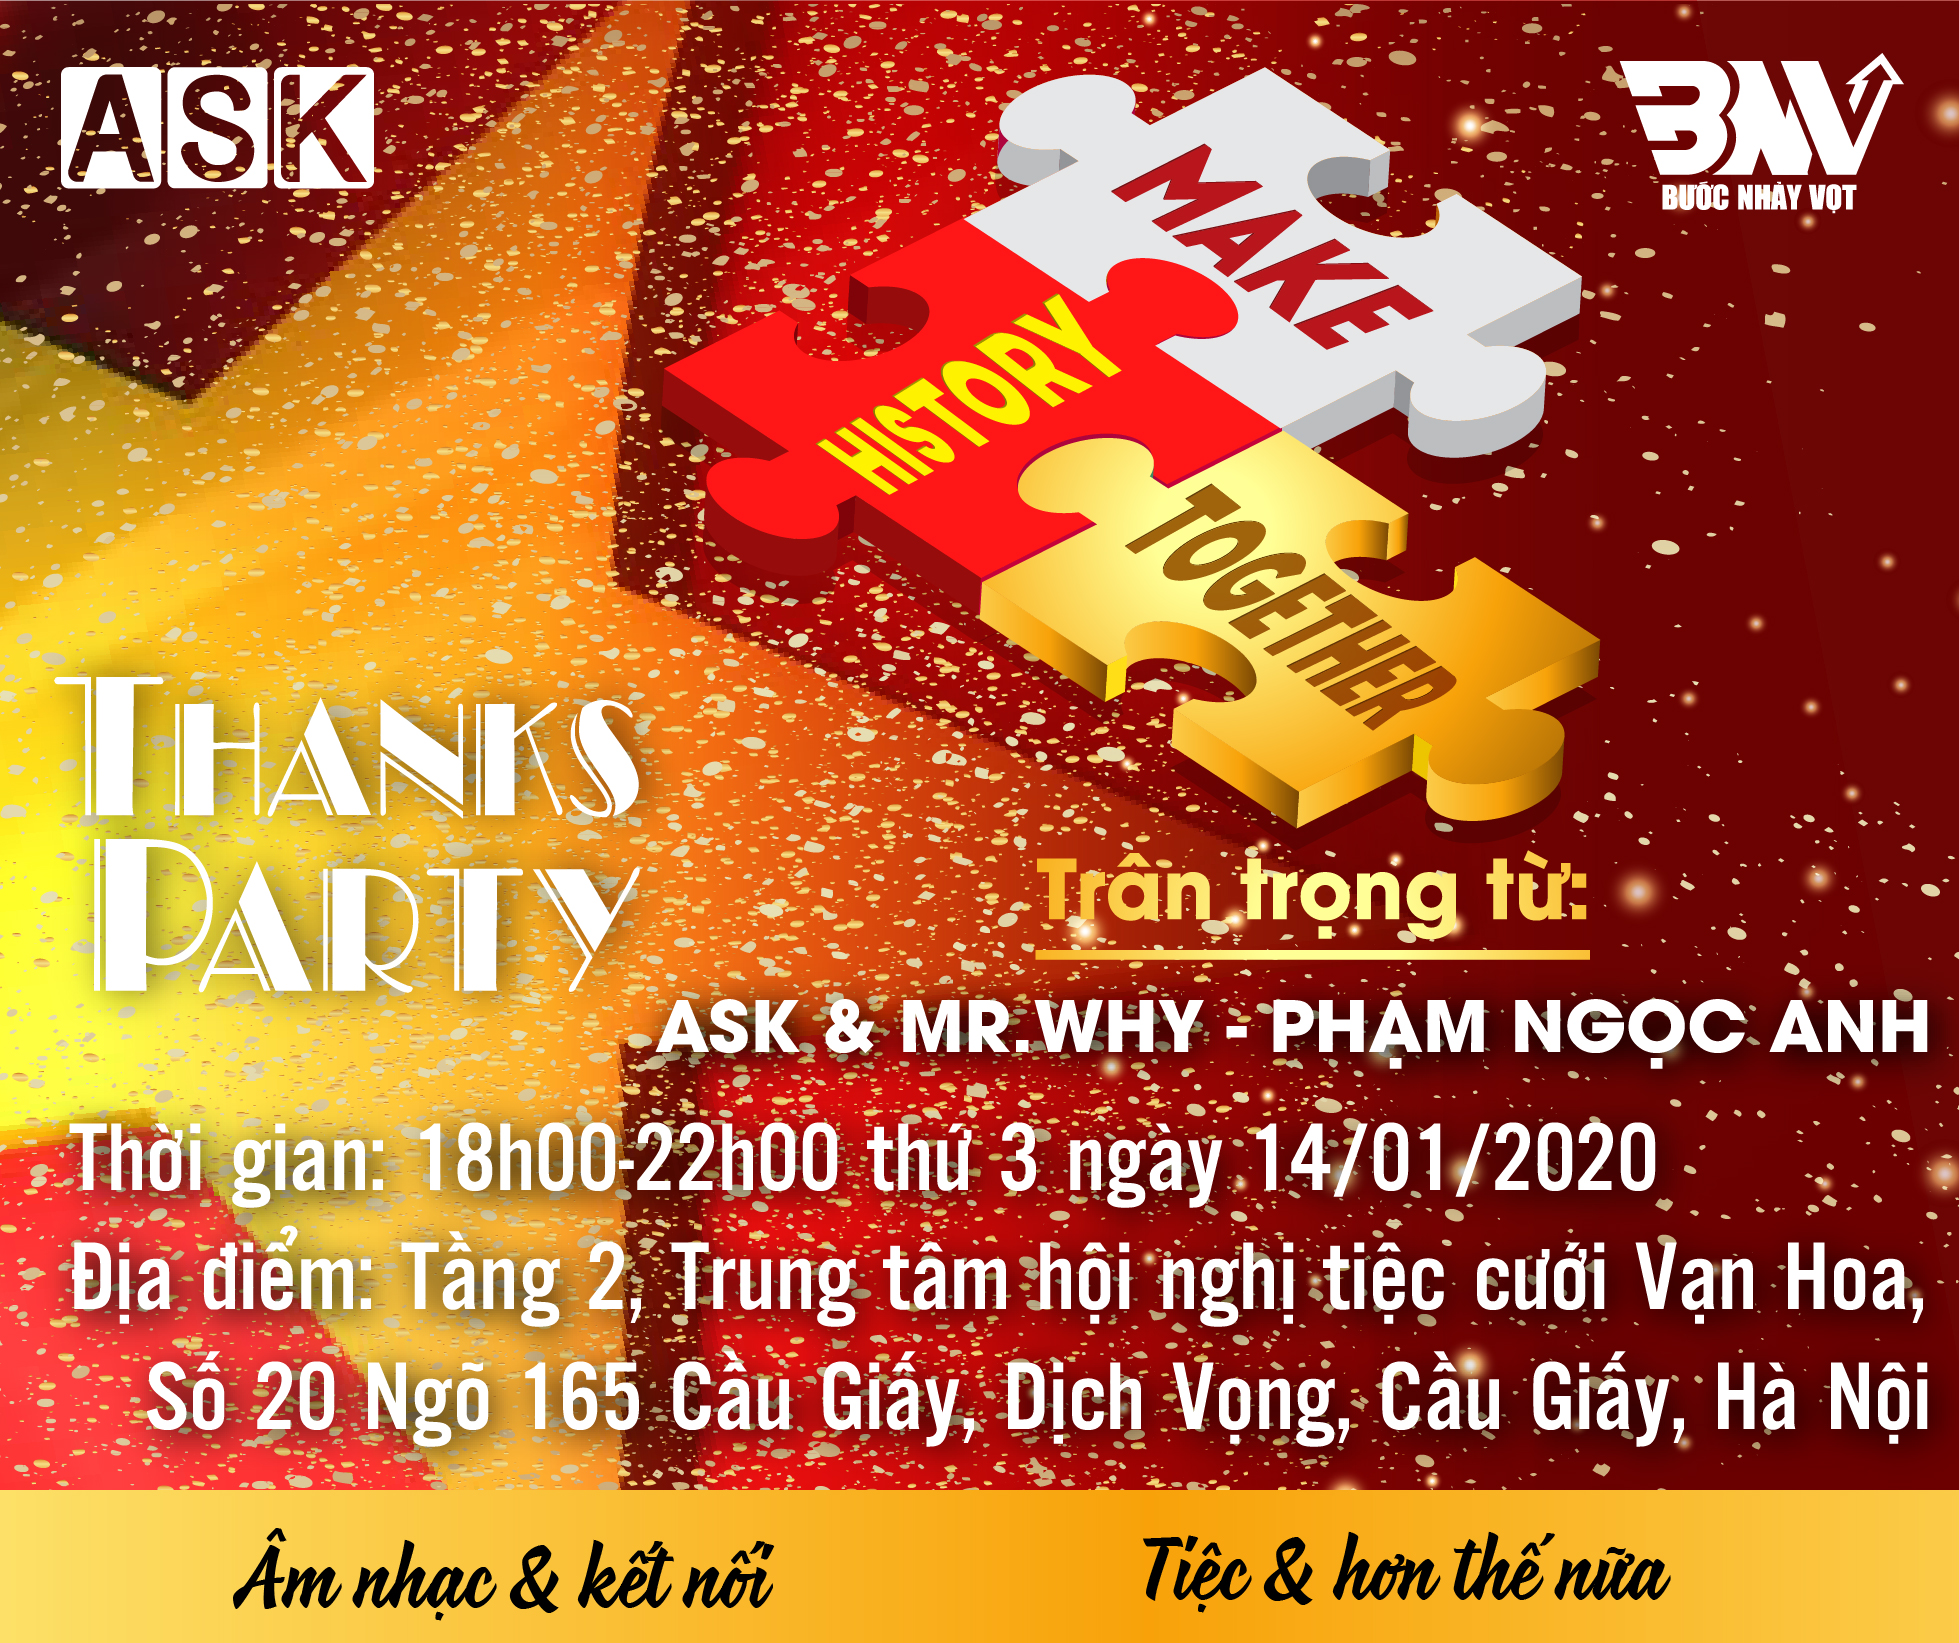 THANK PARTY HÀ NỘI: MAKE HISTORY TOGETHER